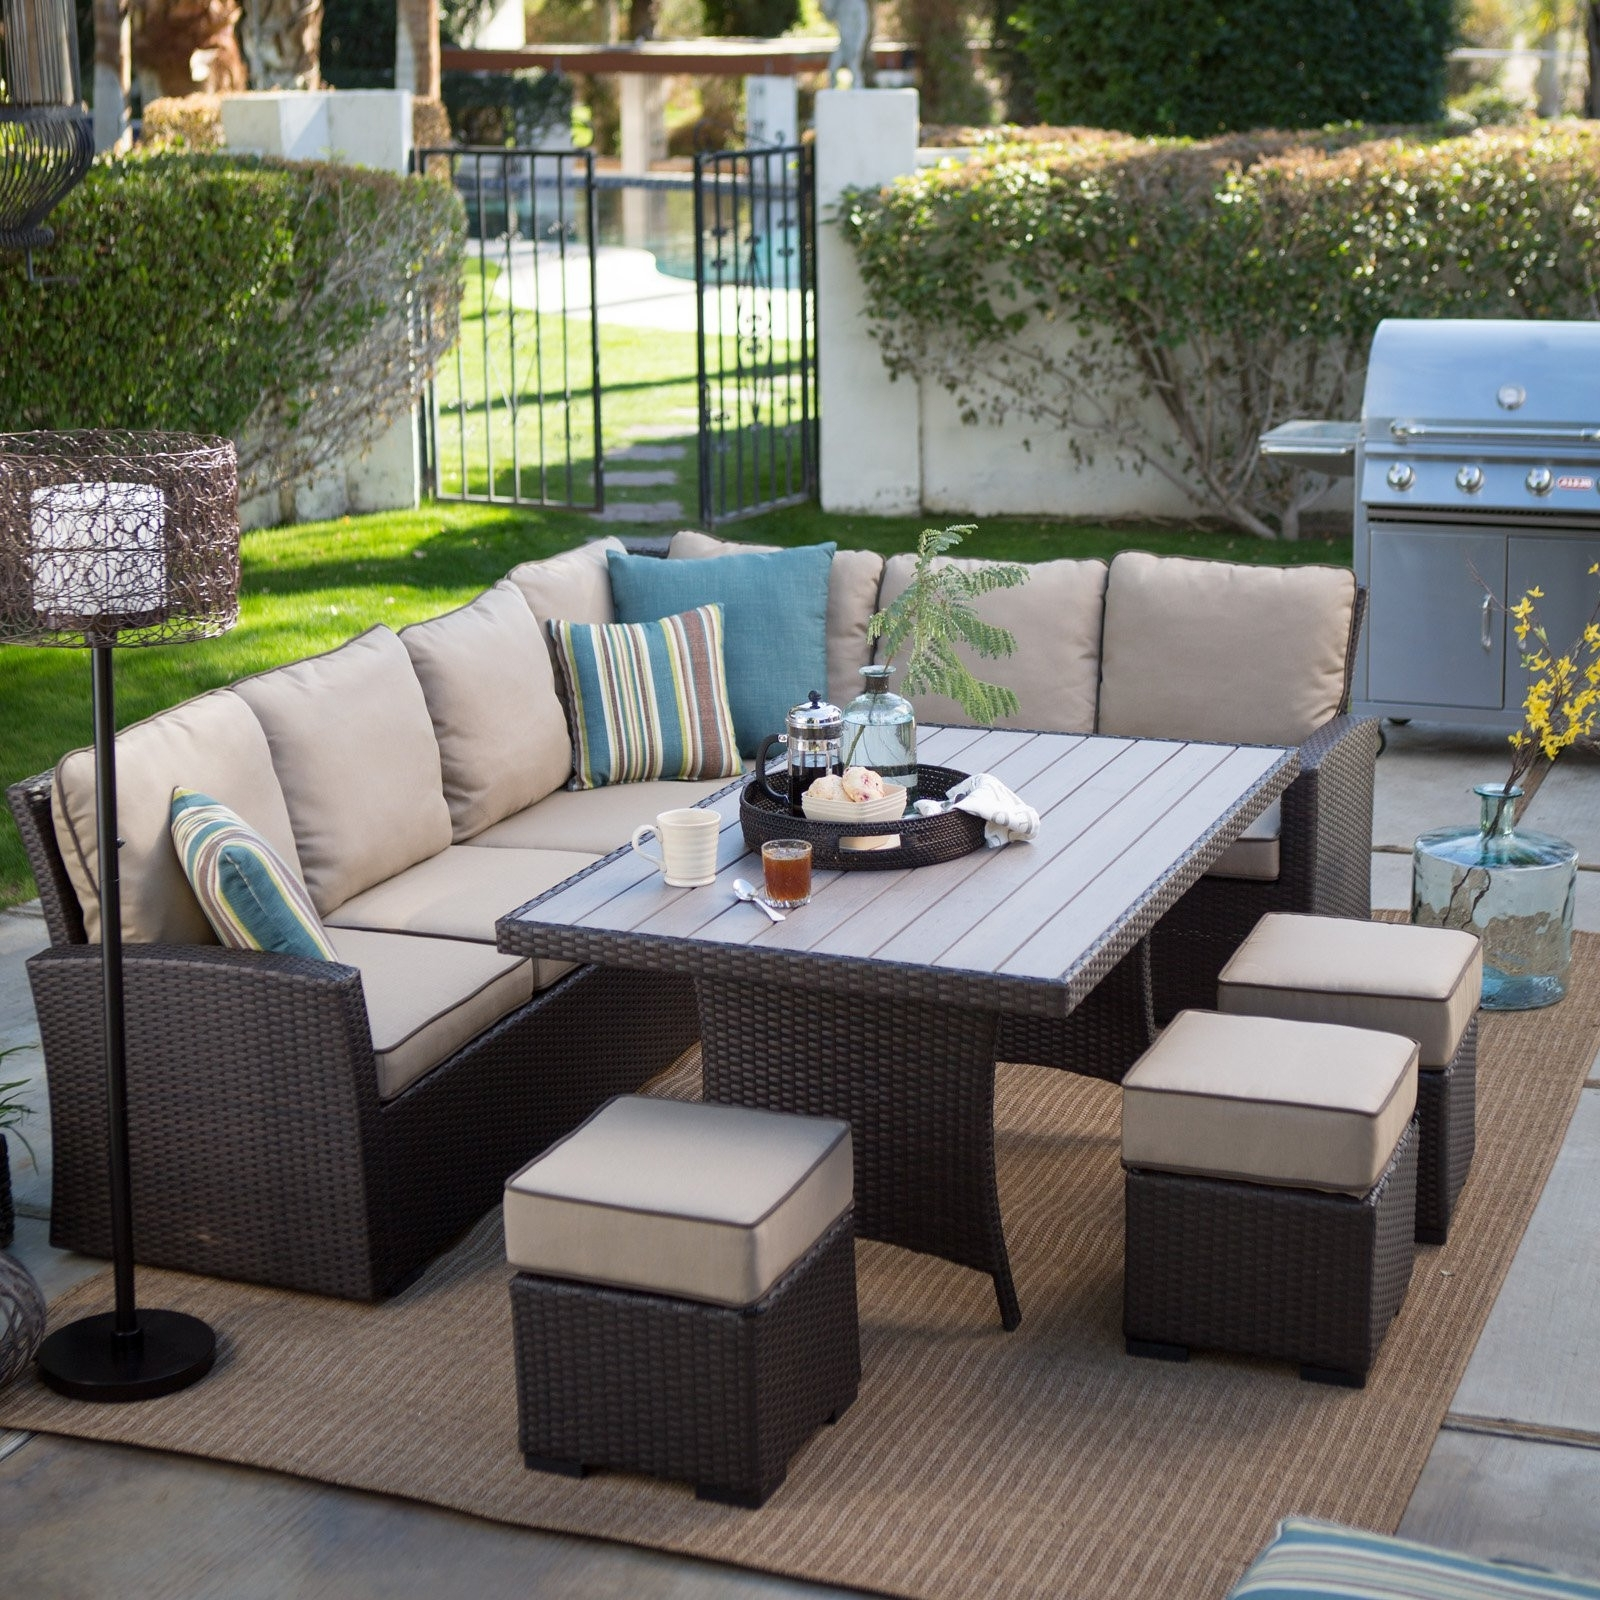 Wayfair Outdoor Conversation Sets Wayfair Outdoor Furniture Inside Widely Used Wayfair Outdoor Patio Conversation Sets (View 14 of 20)